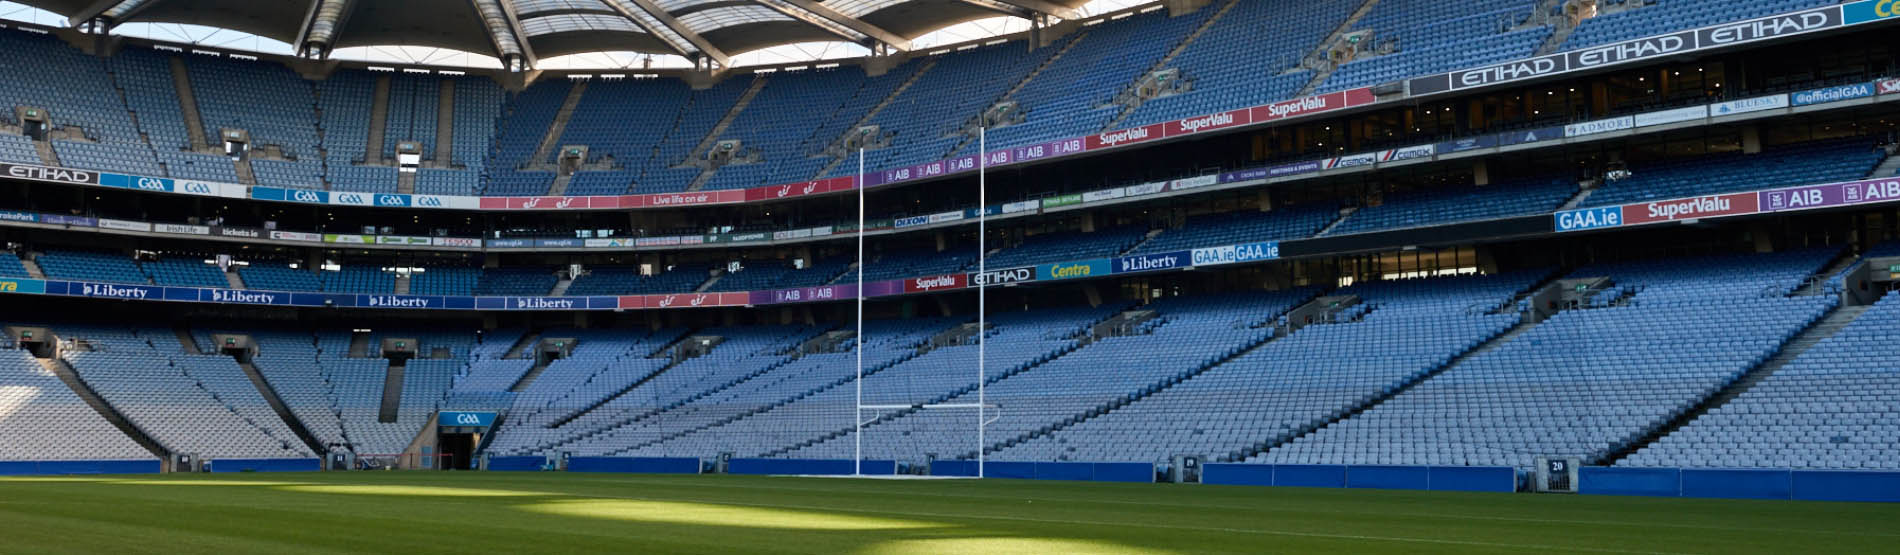 pitch side view at Croke Park stadium